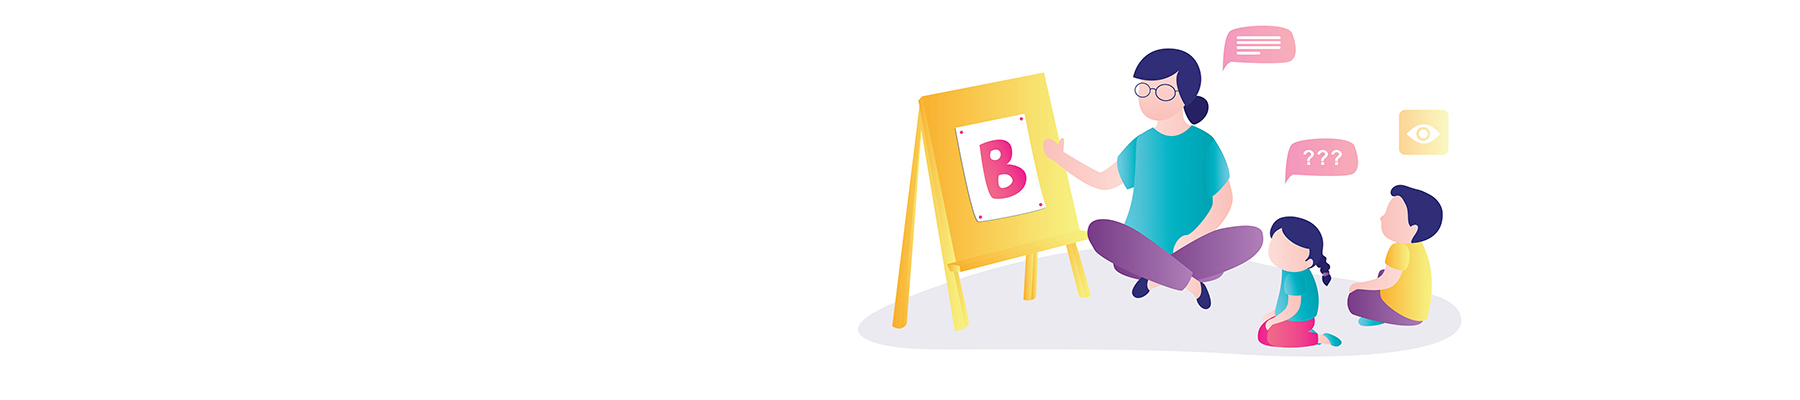 An illustration of a woman pointing to an easel showing the letter